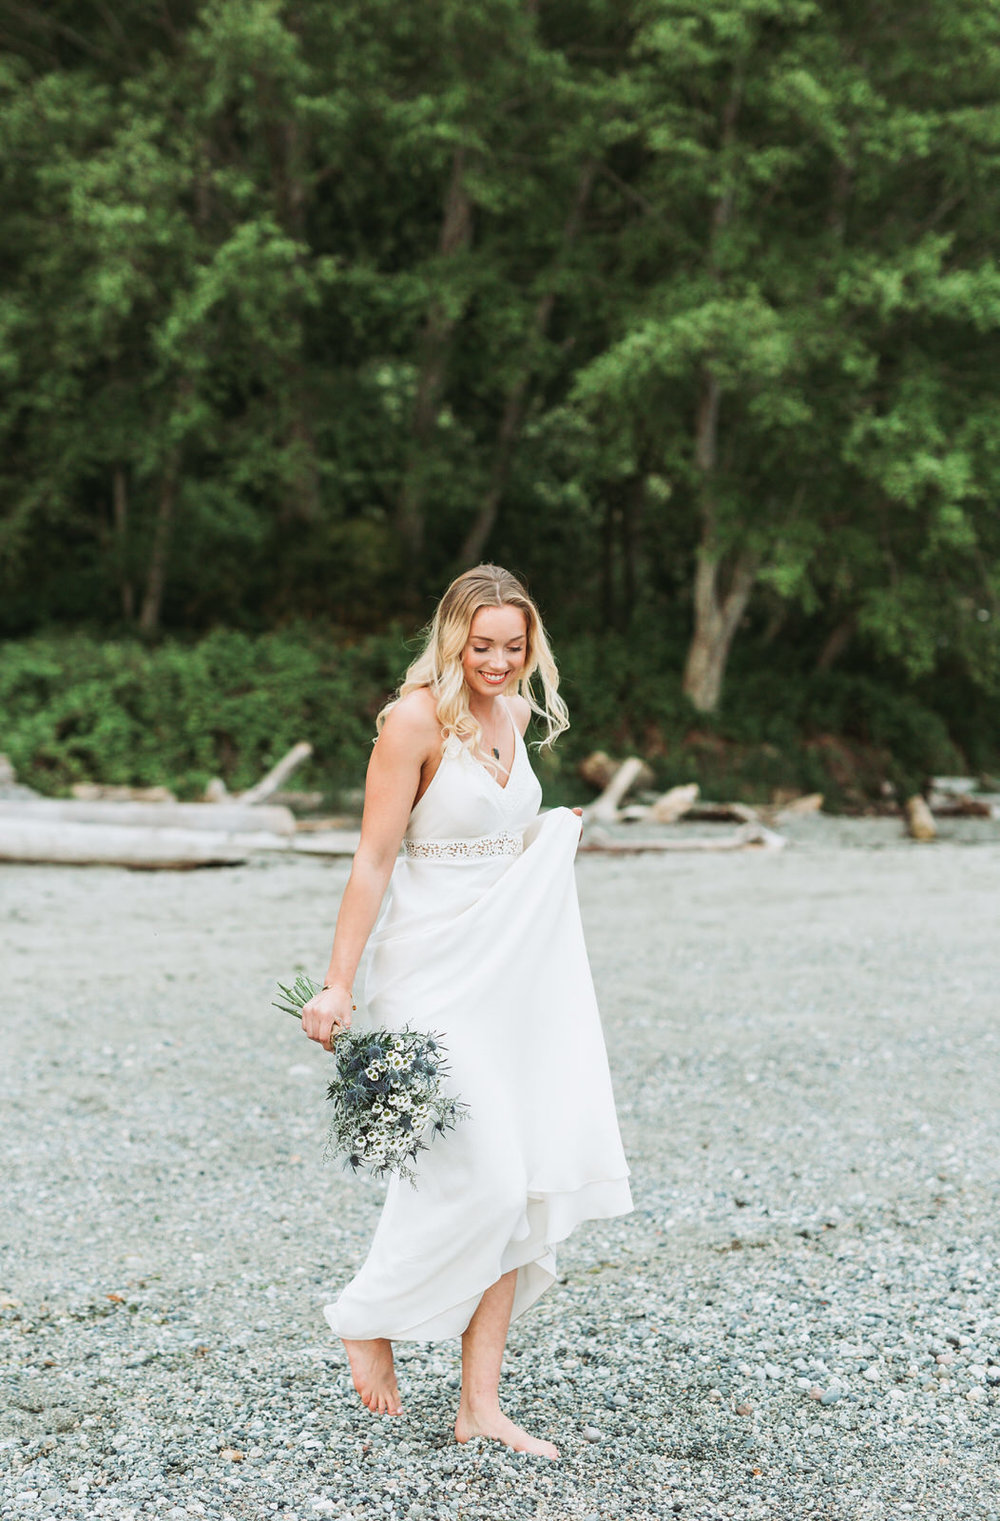 Jennifer Picard Photography - Vancouver Wedding Photographer - Sunshine Coast Wedding Photographer - Bridal InspirationIMG_8857_1_1.jpg